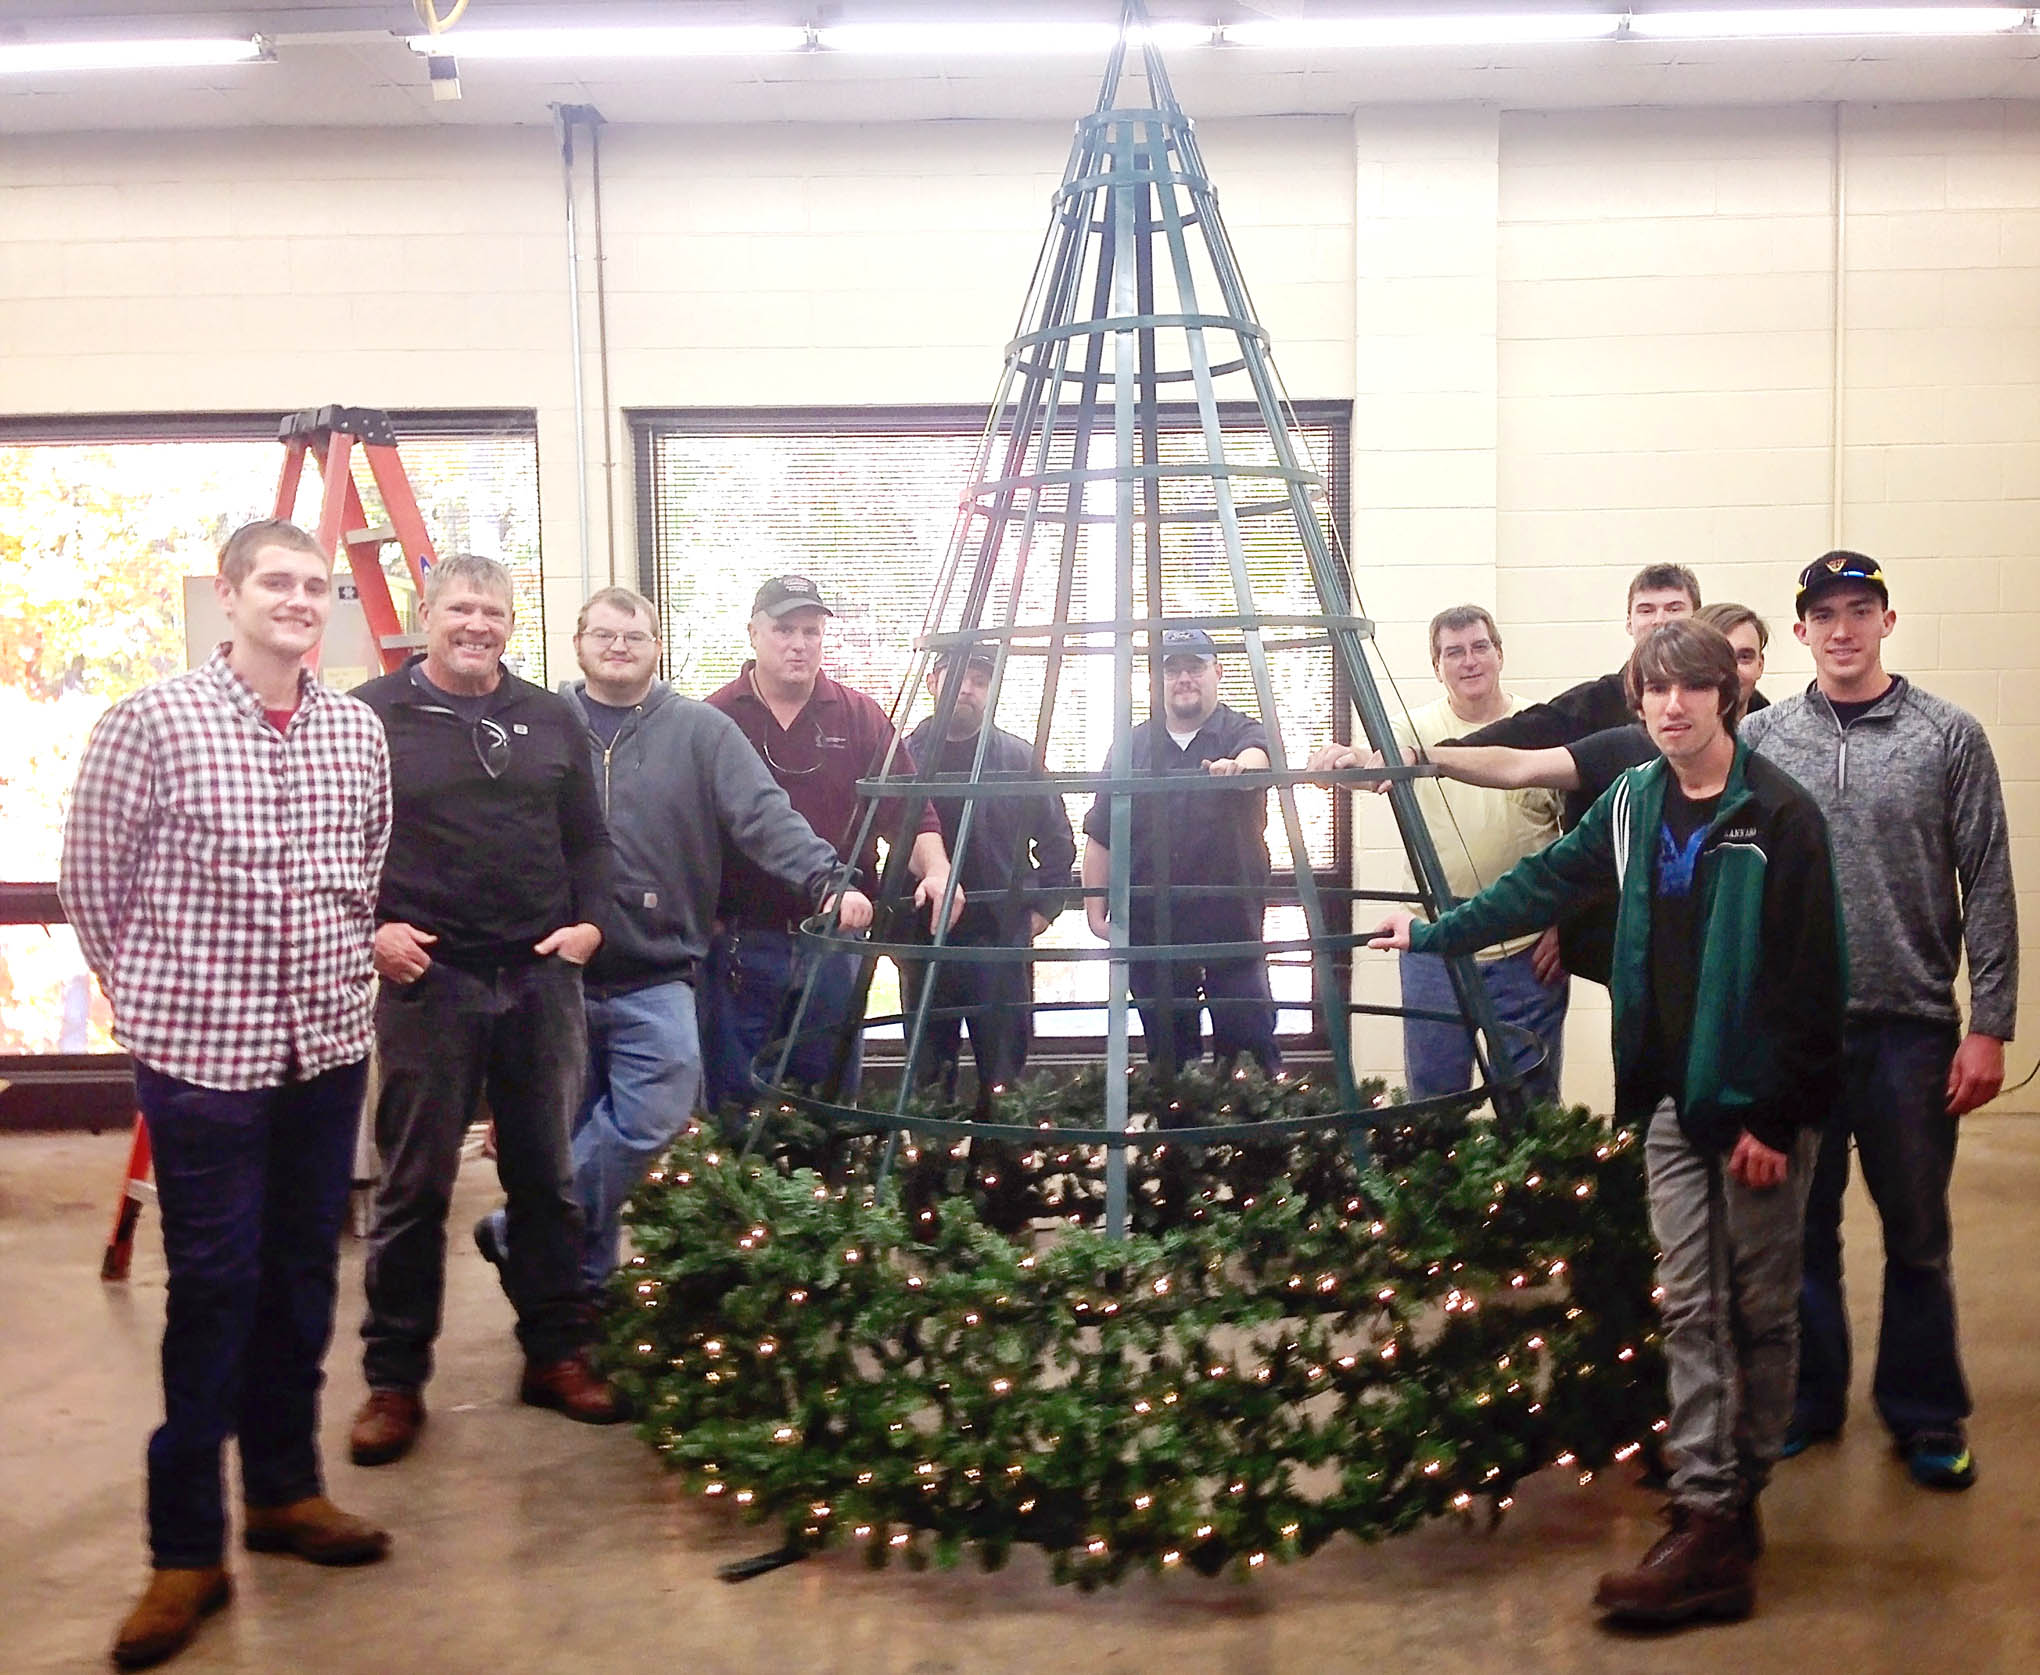 Read the full story, CCCC Christmas tree distinctive to college